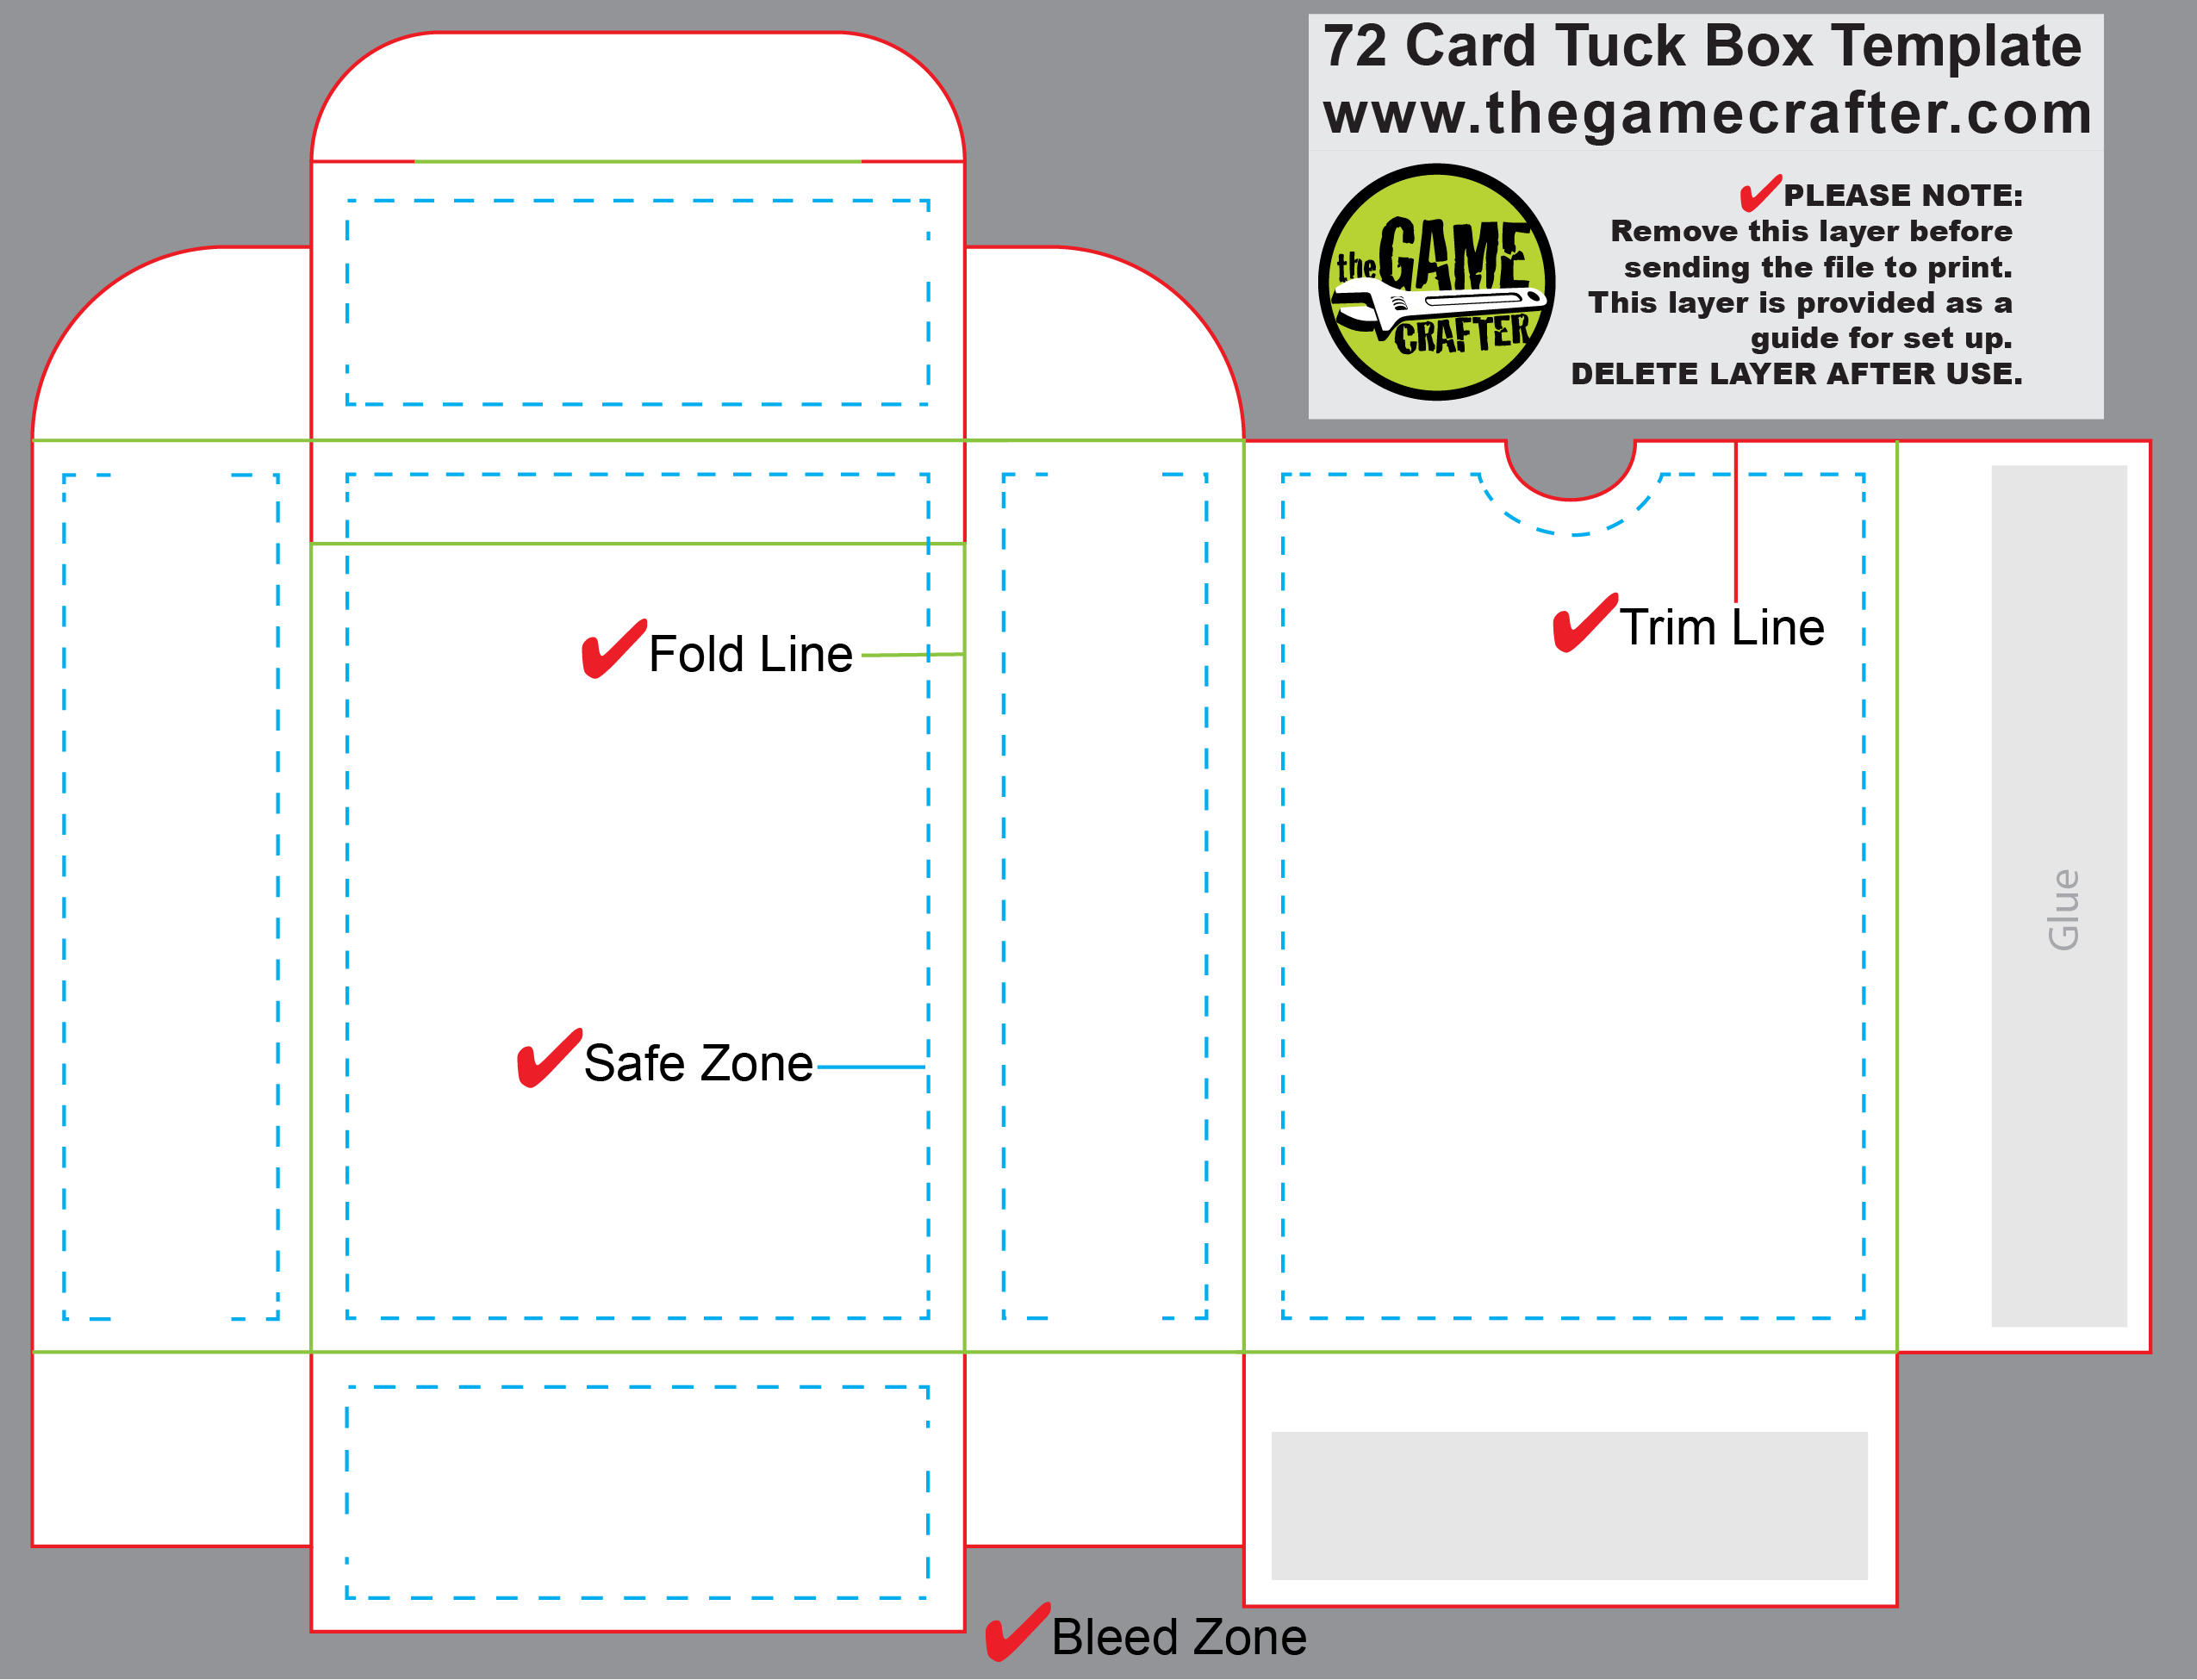 card box template generator - poker tuck box 72 cards